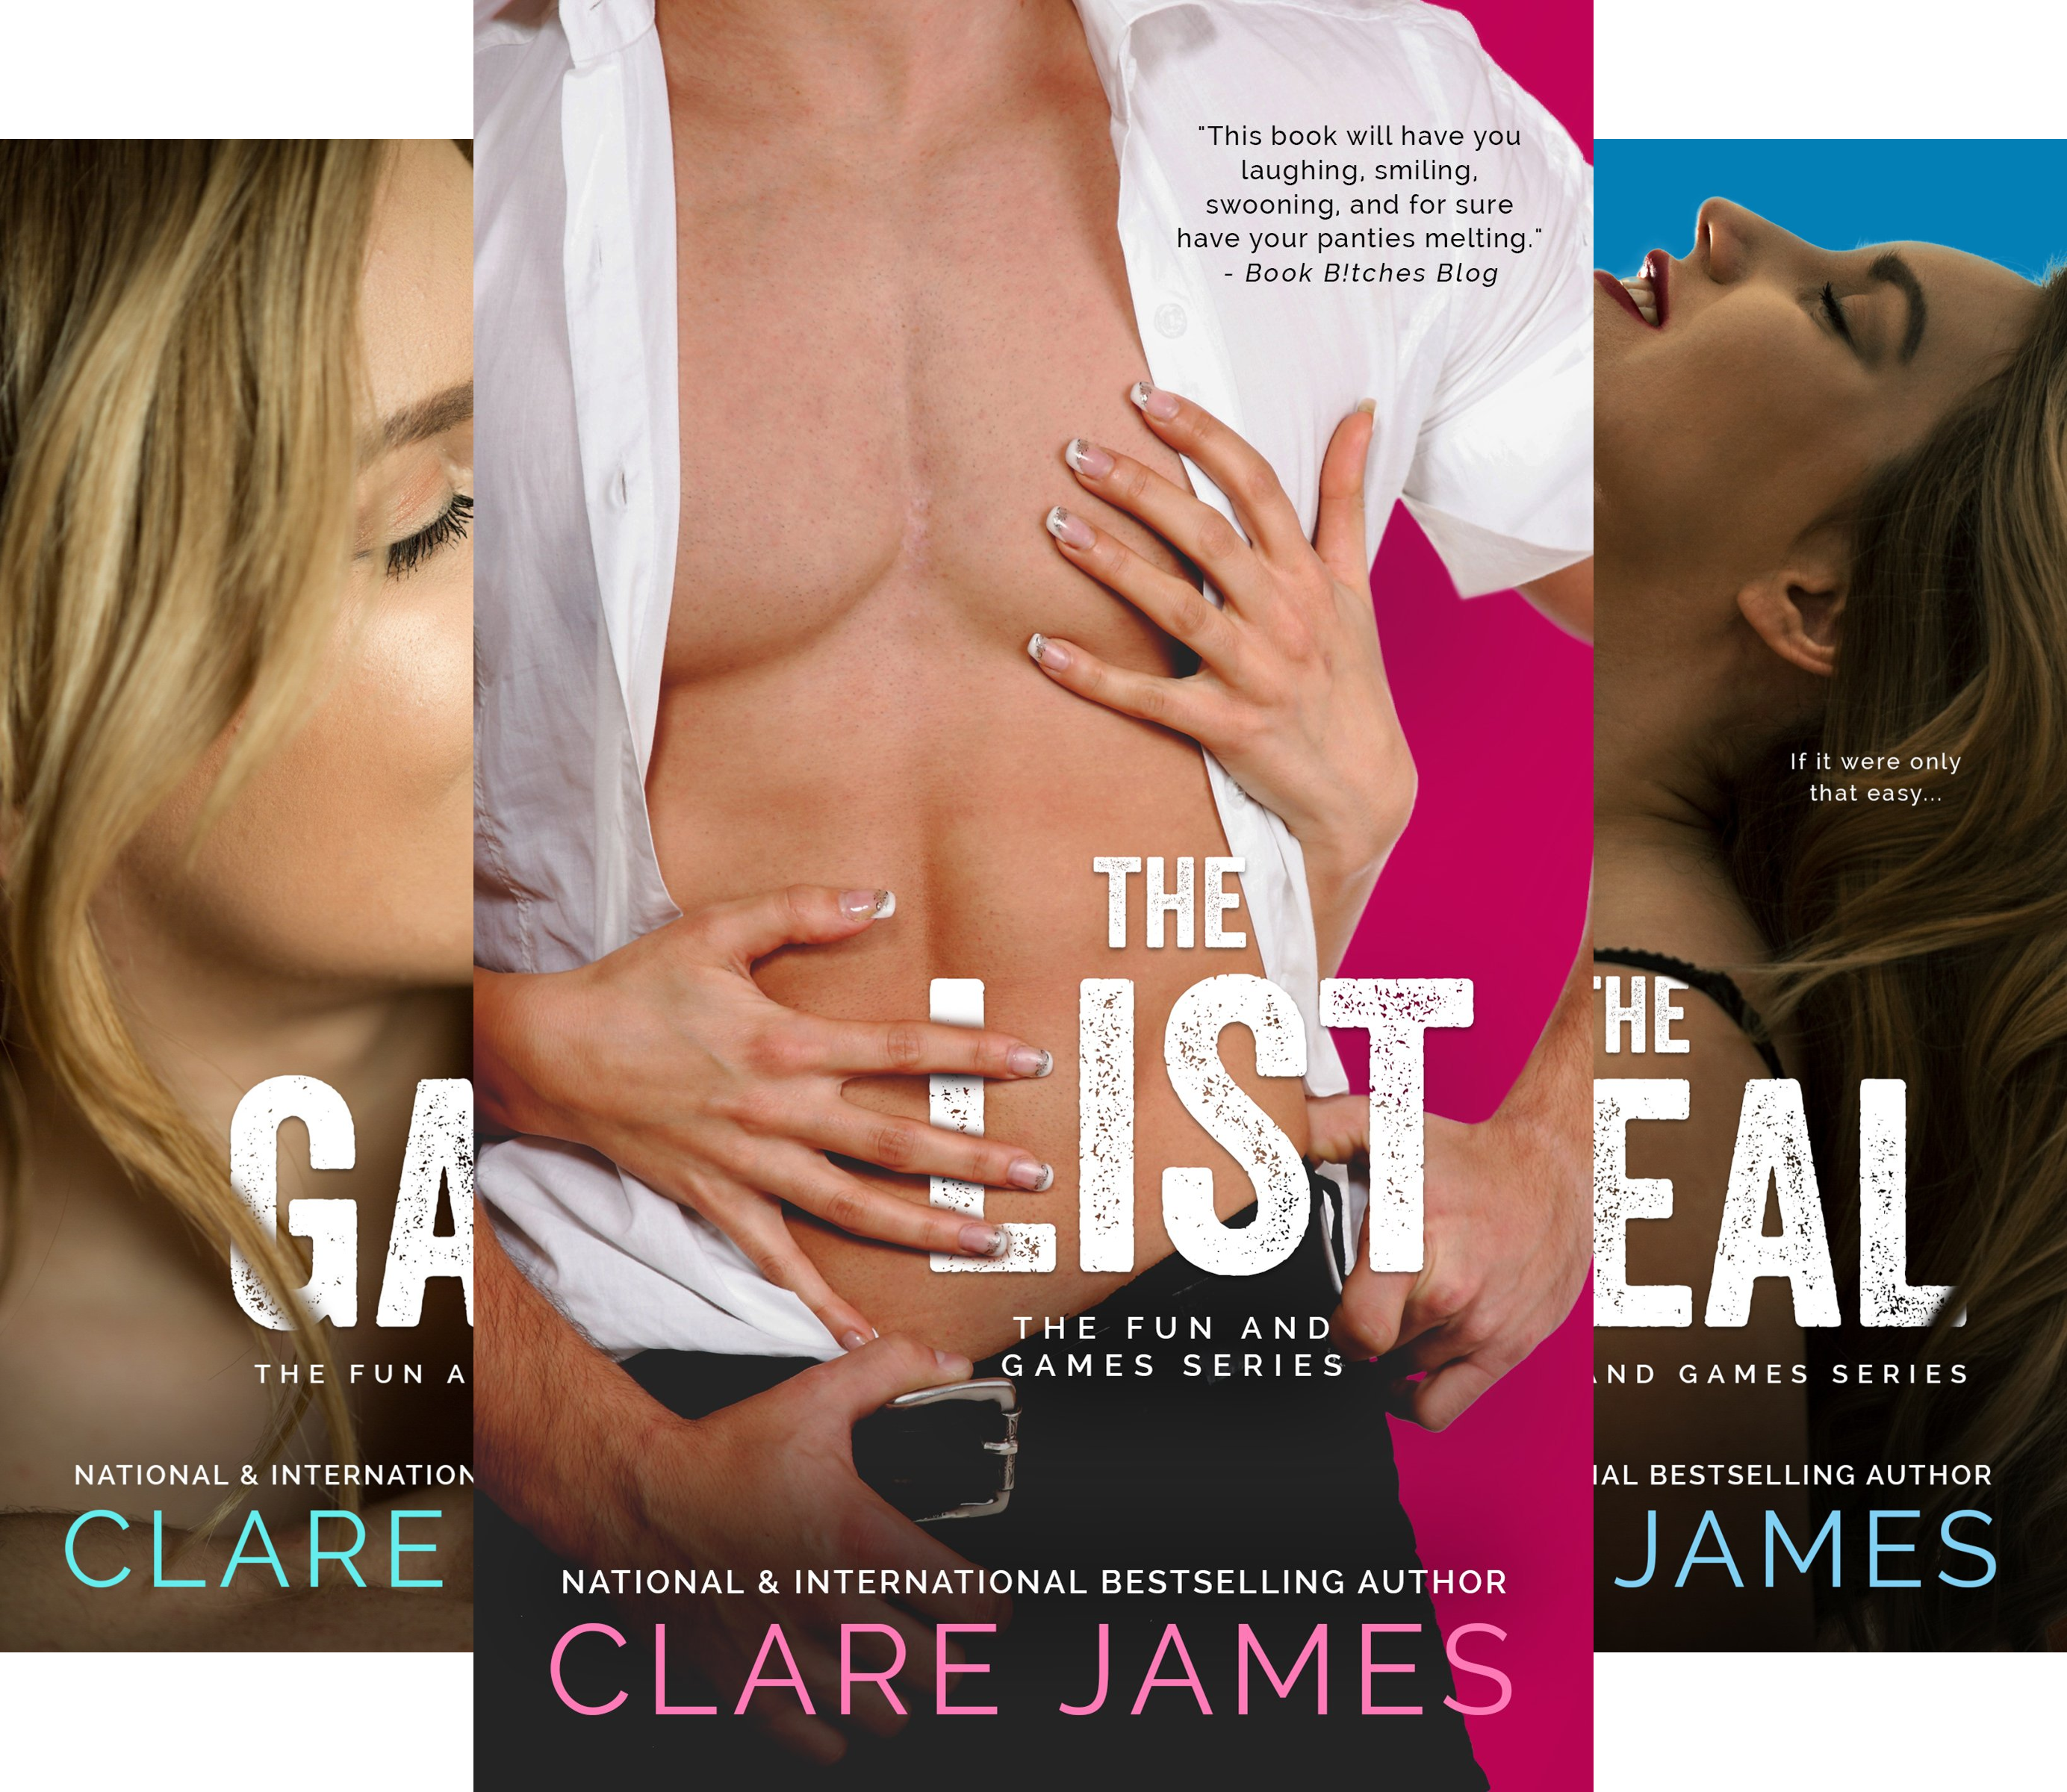 The Fun and Games Series (3 Book Series)